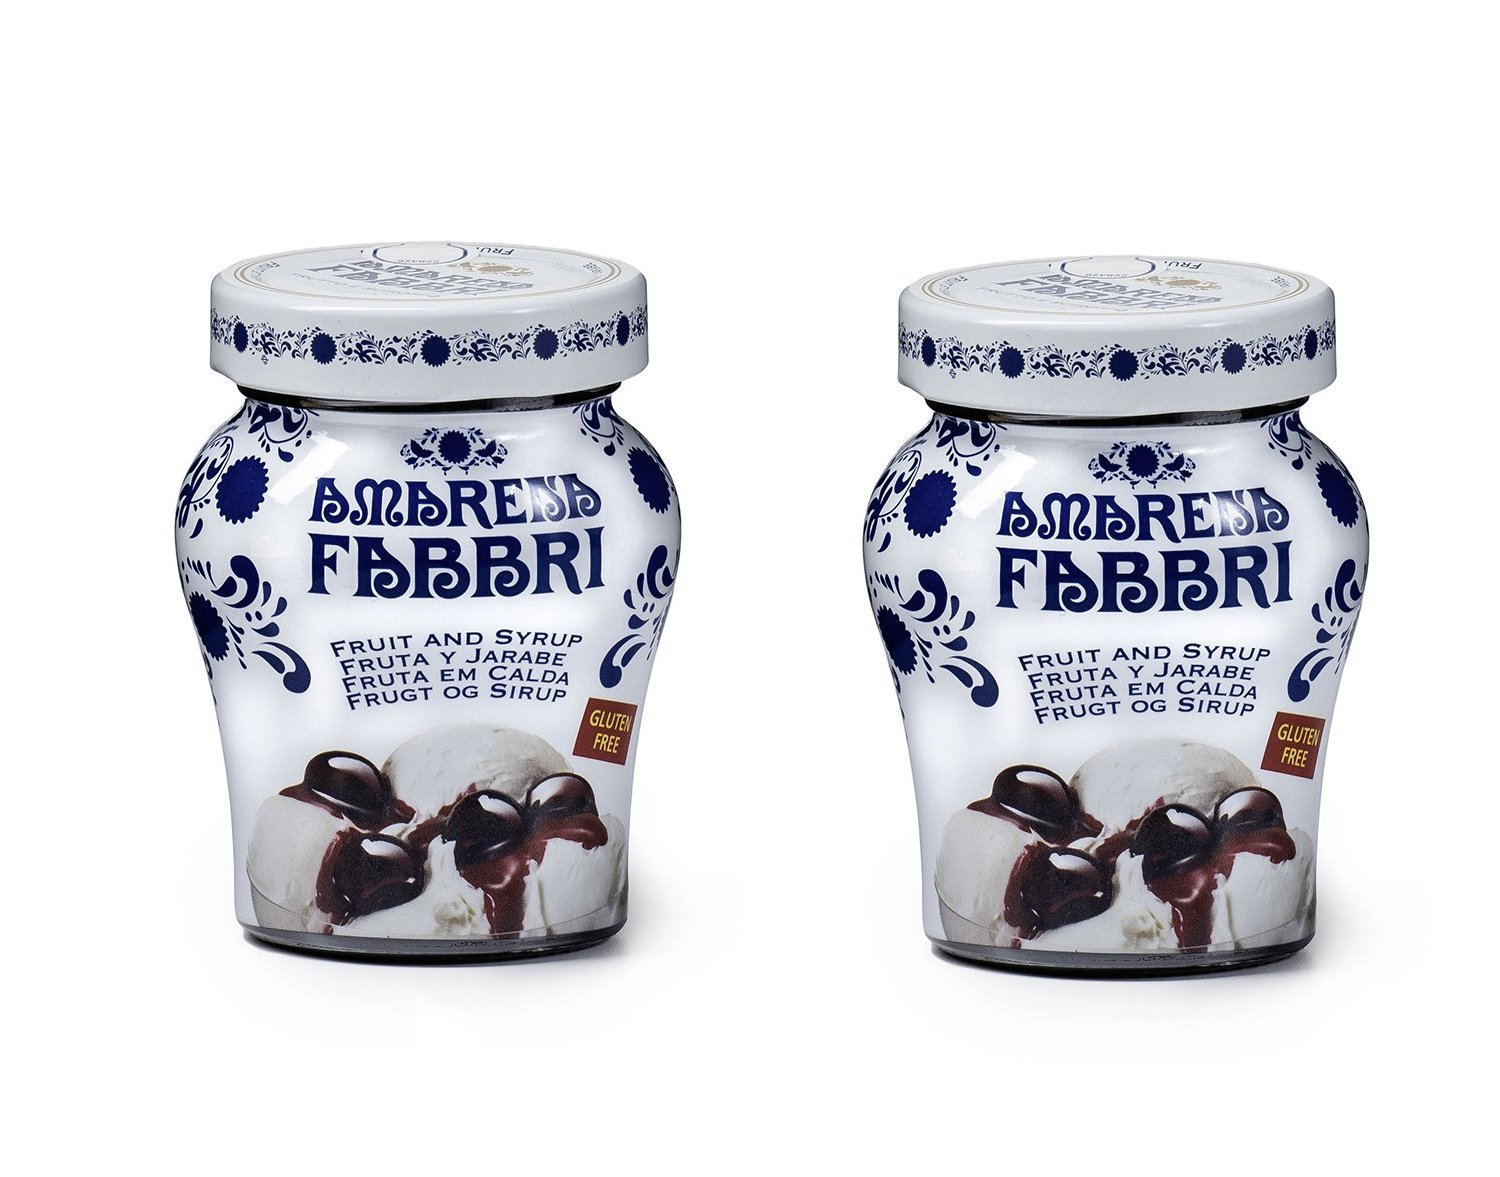 Fabbri Amarena Cherries In Syrup, 8.1 Ounce (Pack of 2)